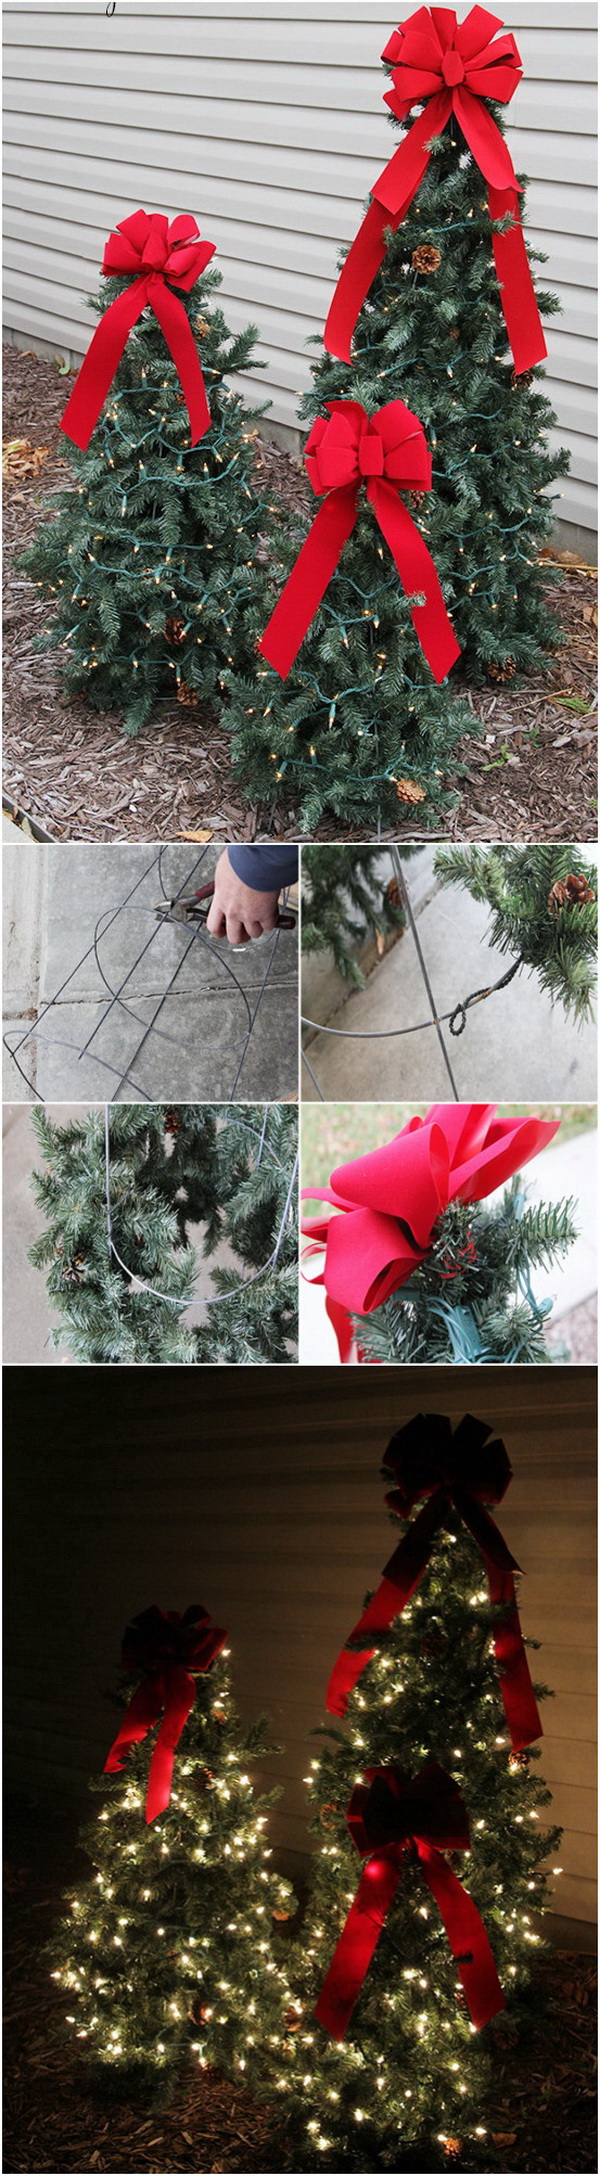 Homemade Projects & Ideas for Christmas Decoration: Tiered Tomato Cage Christmas Trees.